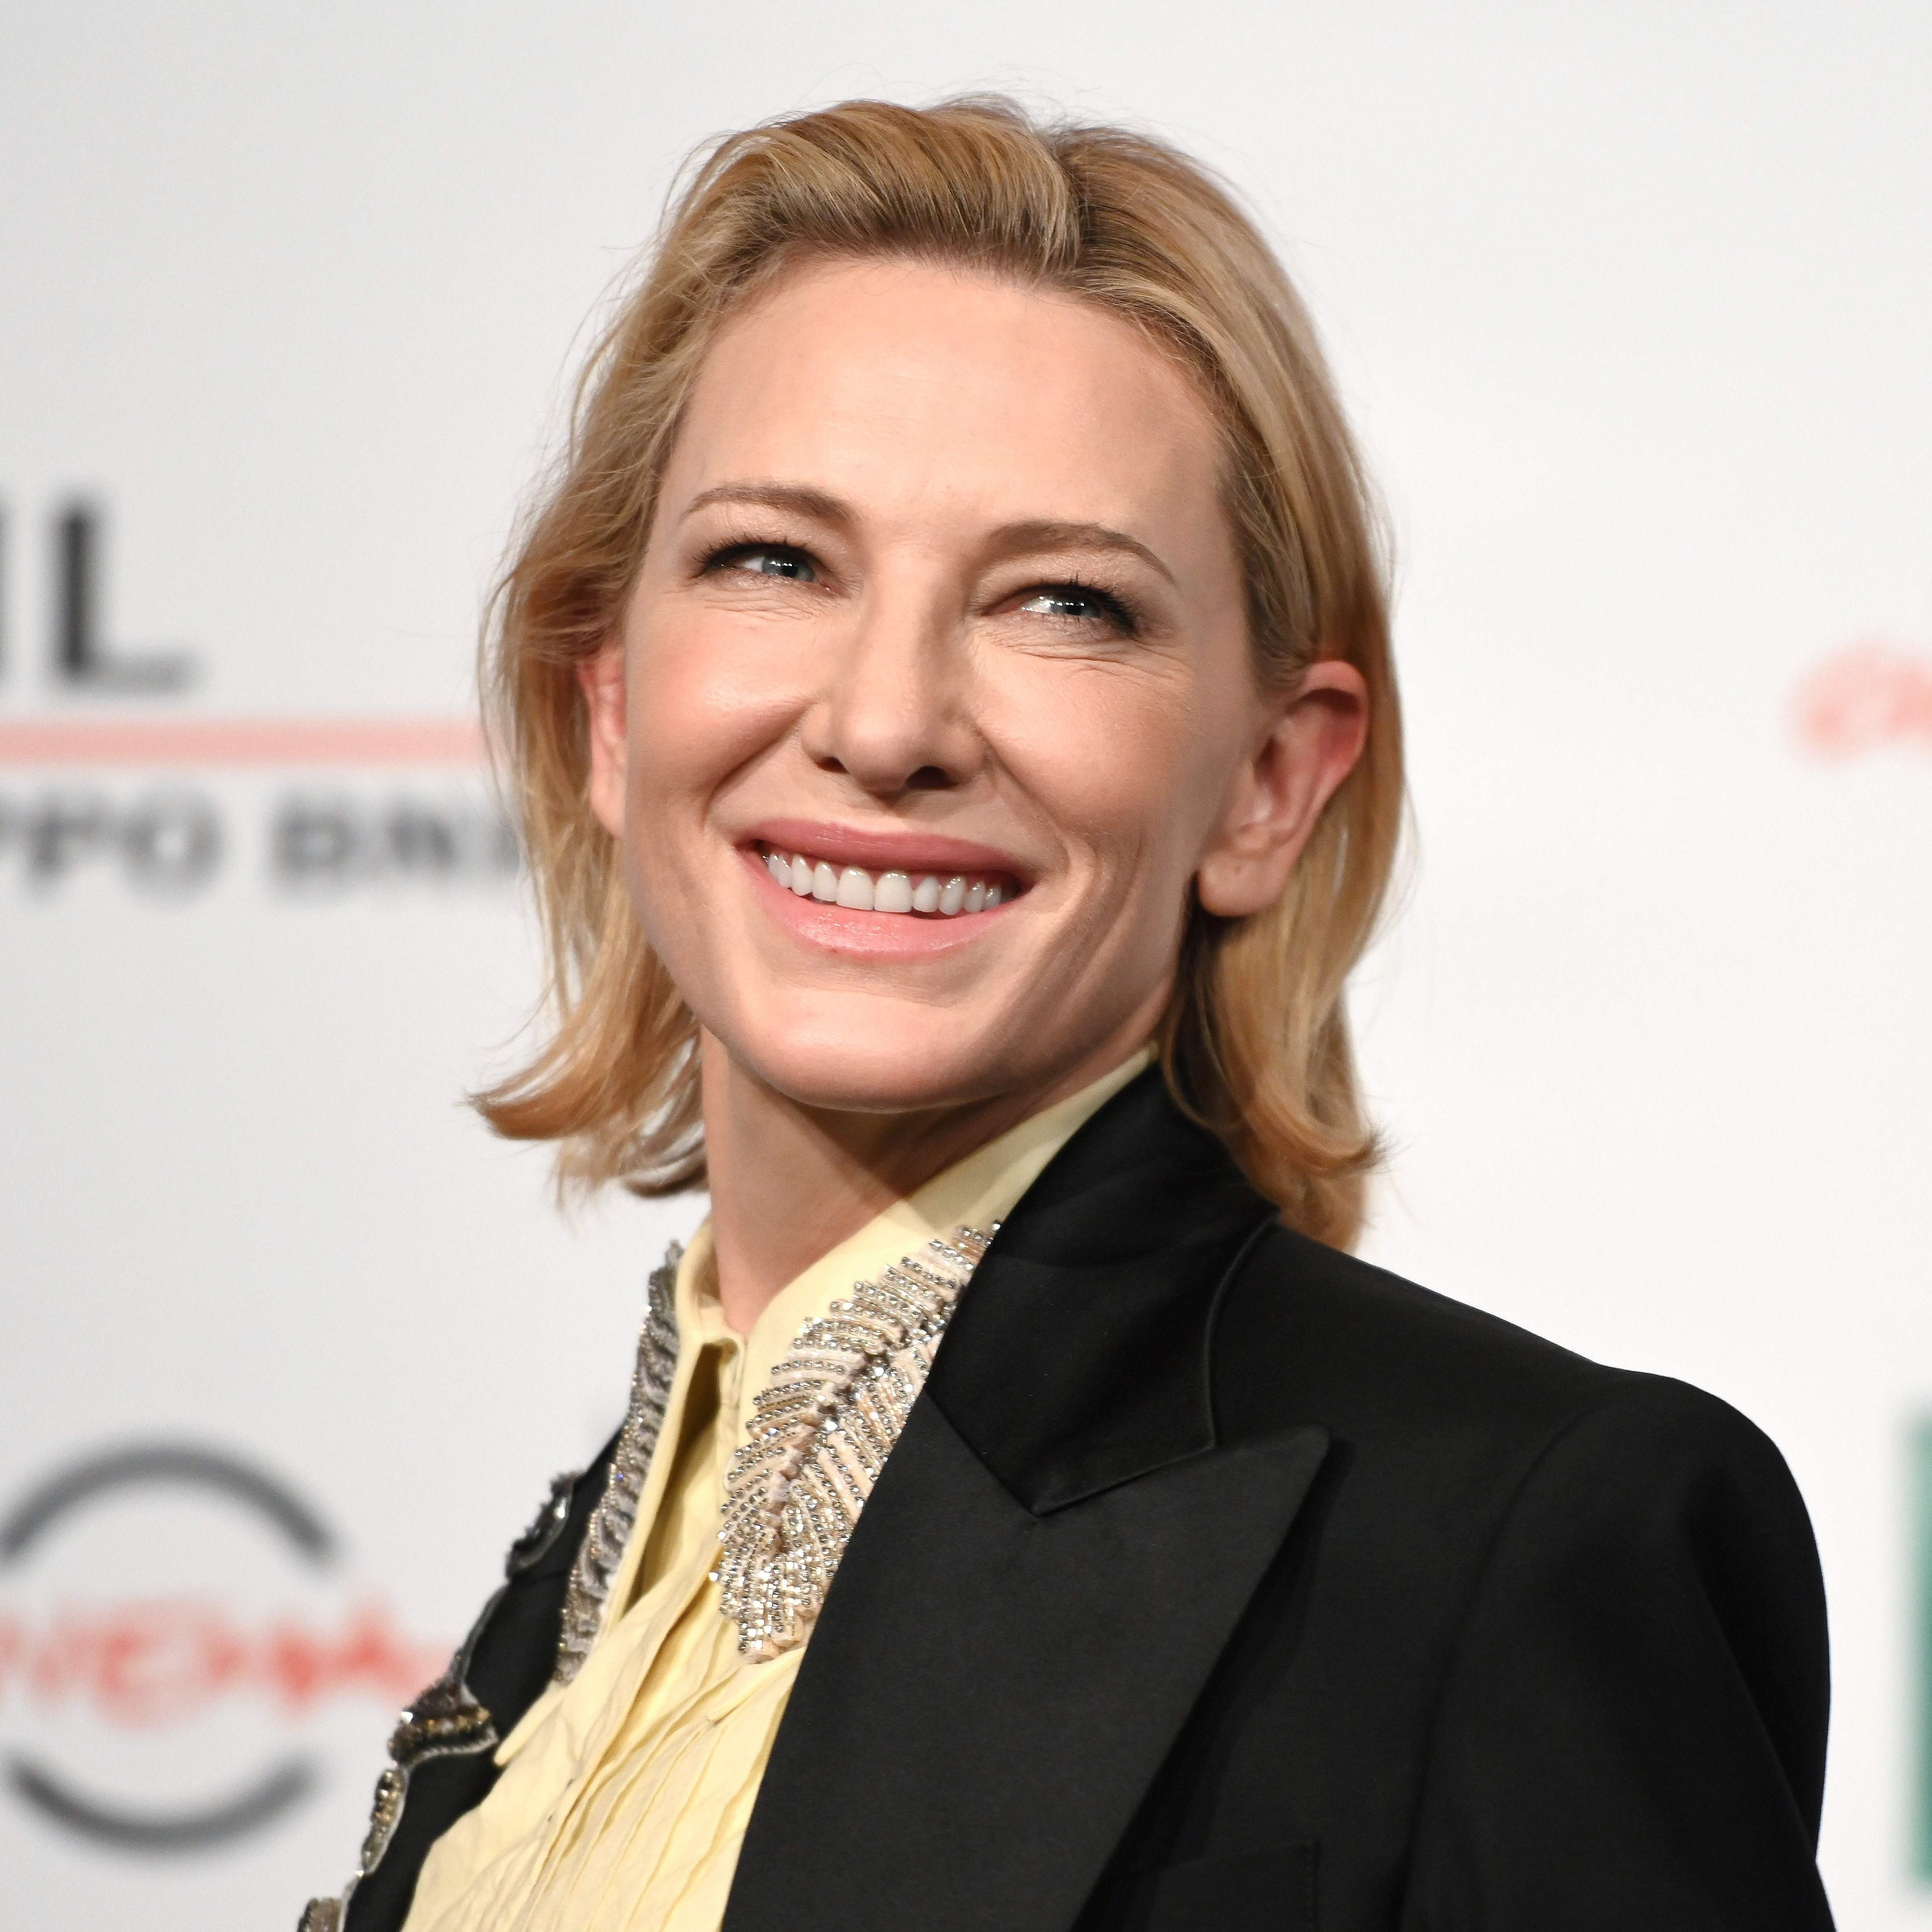 "Australian actress Cate Blanchett smiles while posing during the photocall of the movie ""The House With a Clock in Its Walls"" on October 19, 2018 at the Auditorium Parco della Musica in Rome. (Photo by Alberto PIZZOLI / AFP)ALBERTO PIZZOLI/AFP/Getty Images ORIG FILE ID: AFP_1A52Z5"